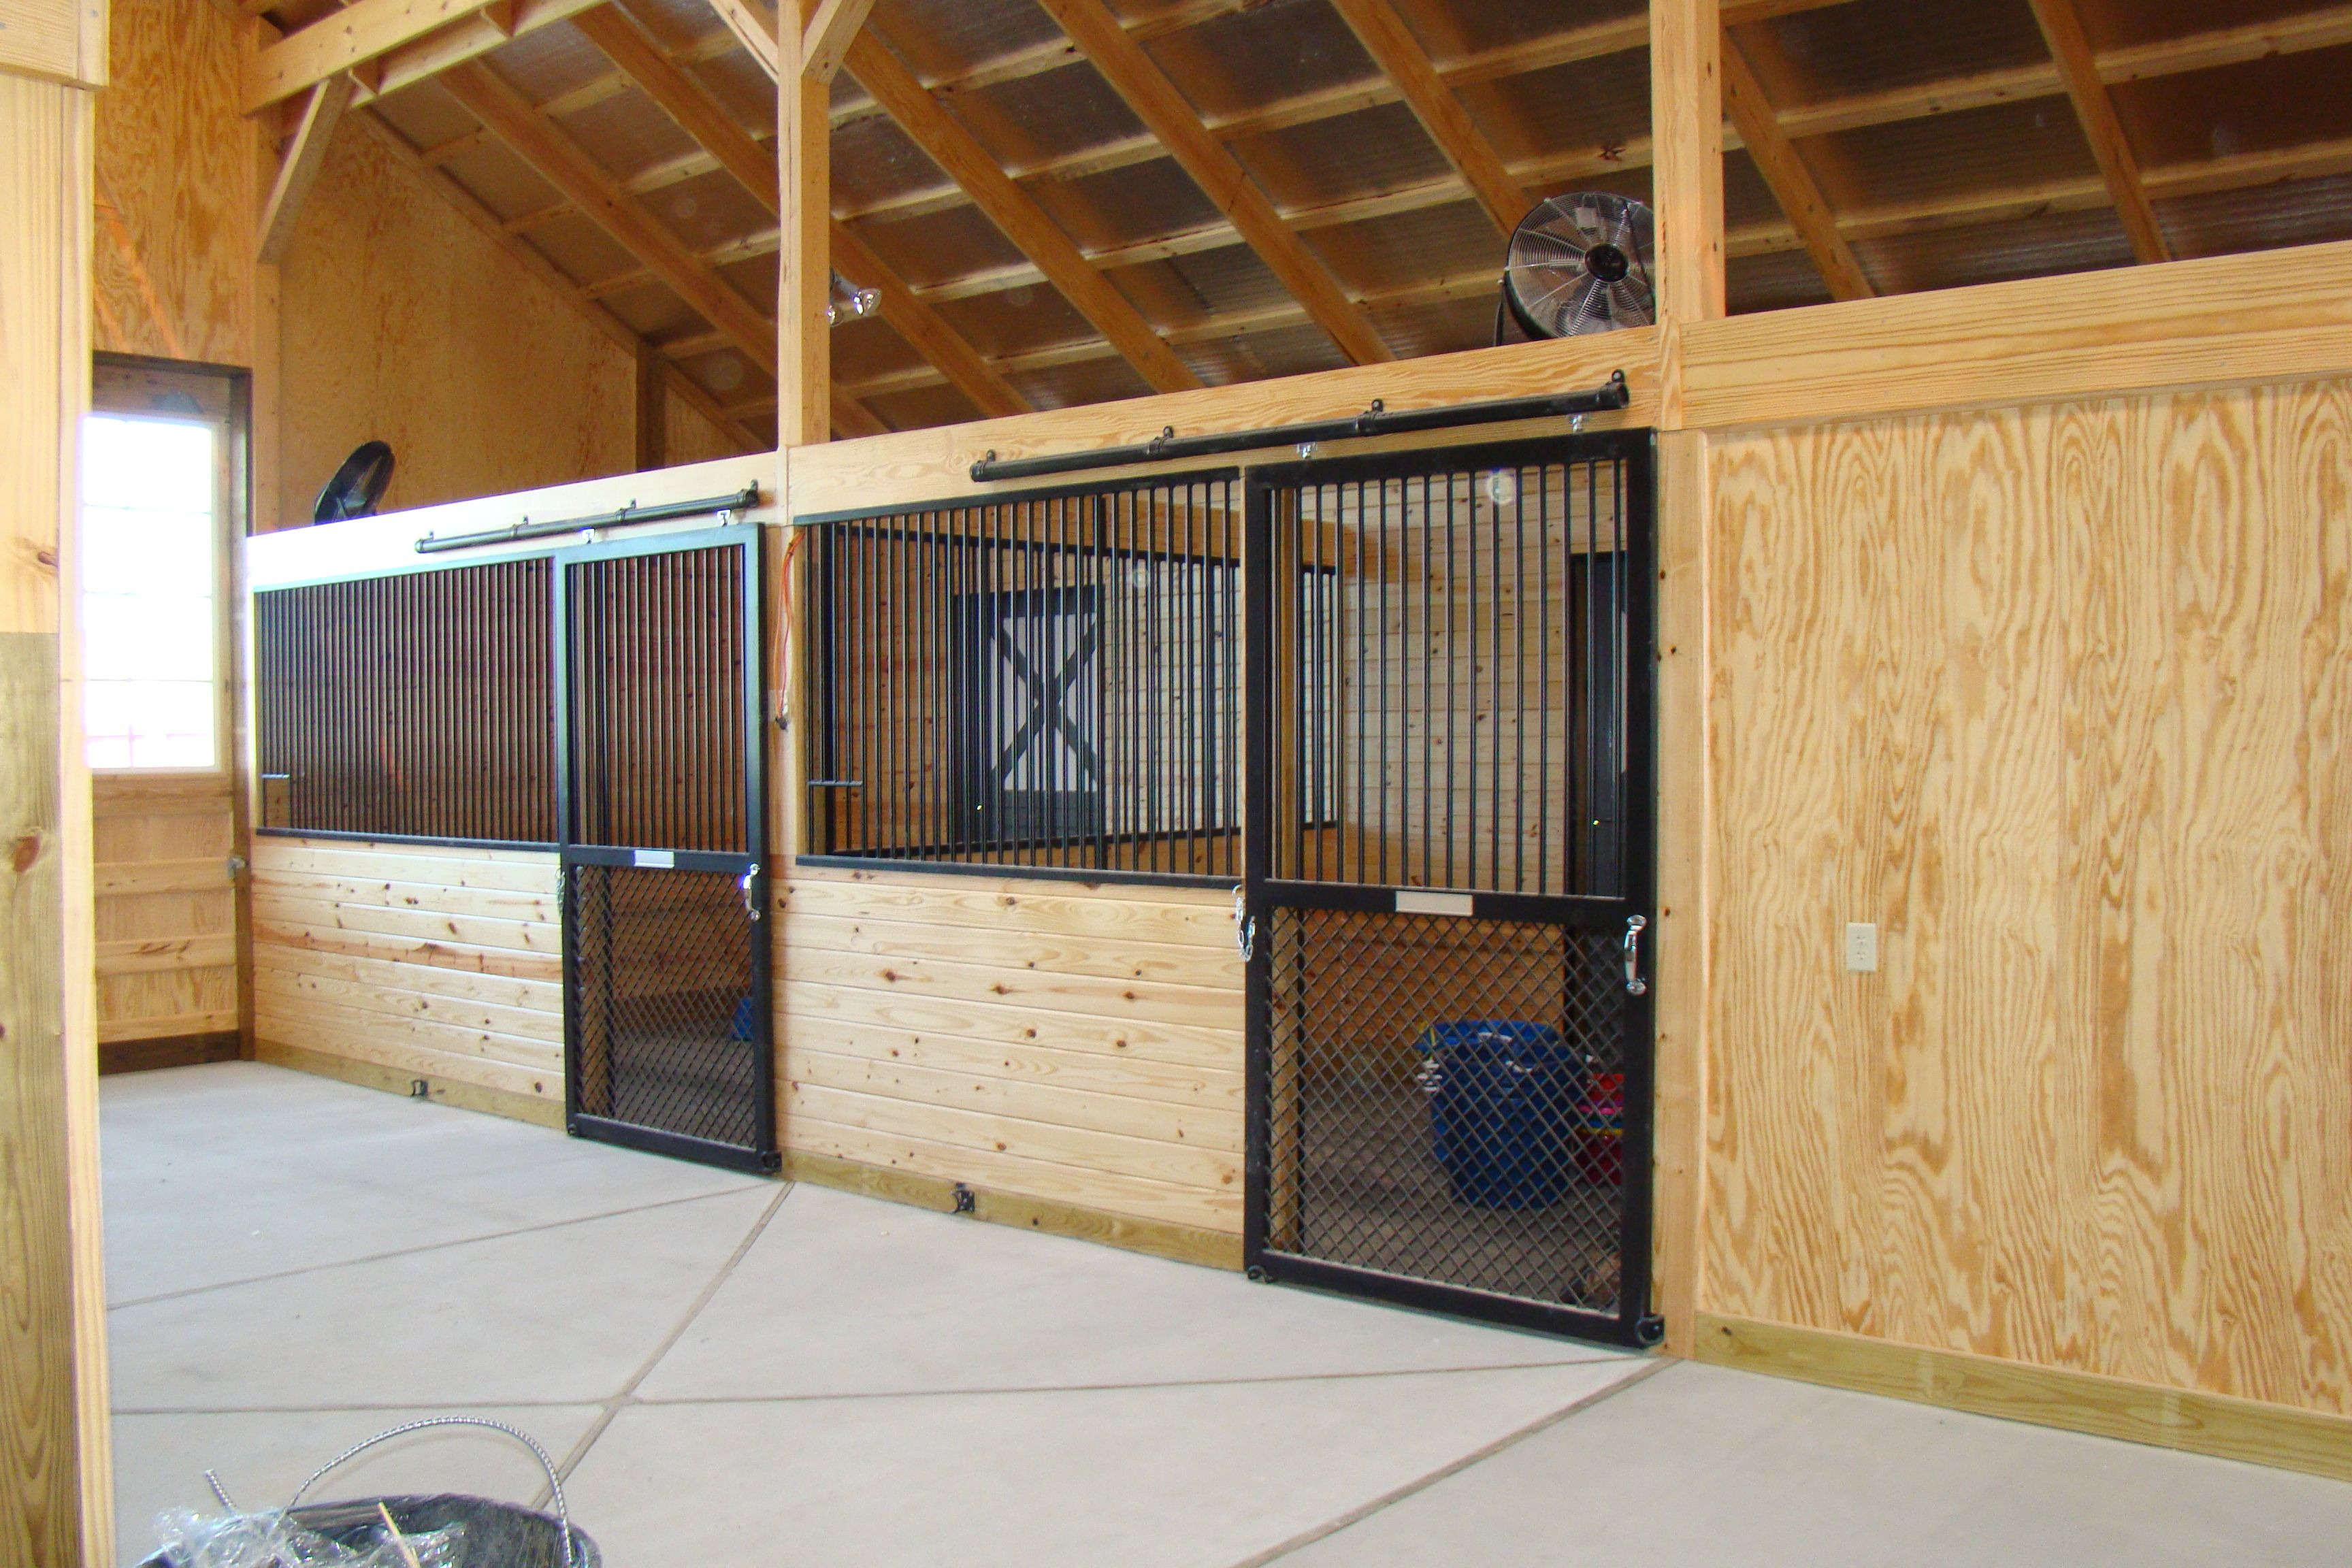 Although these stall doors are probably more expensive for Horse barn materials